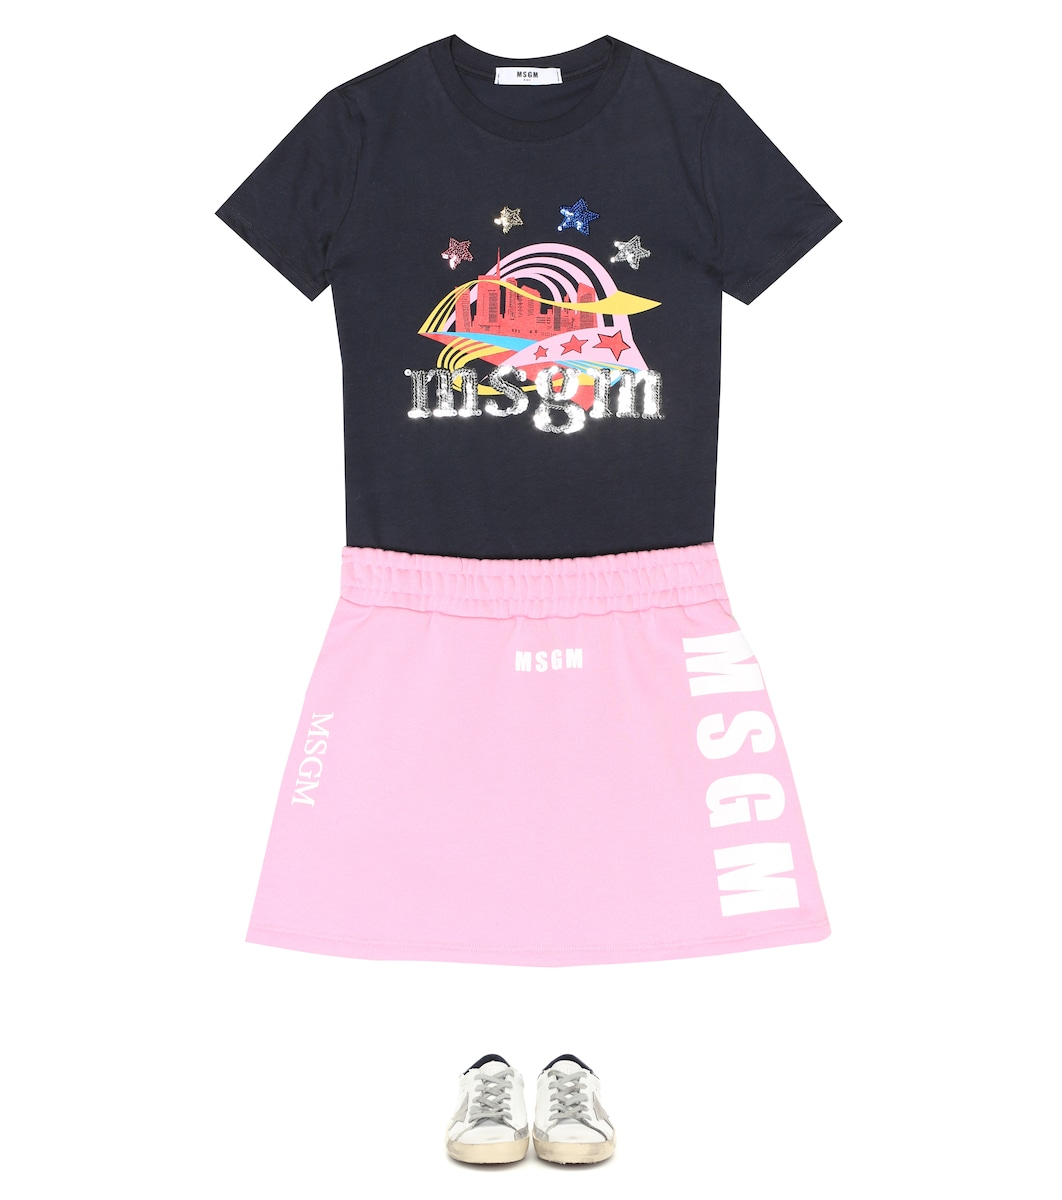 b6a47eefb9 MSGM Kids - T-shirt in cotone con stampa e paillettes   Mytheresa